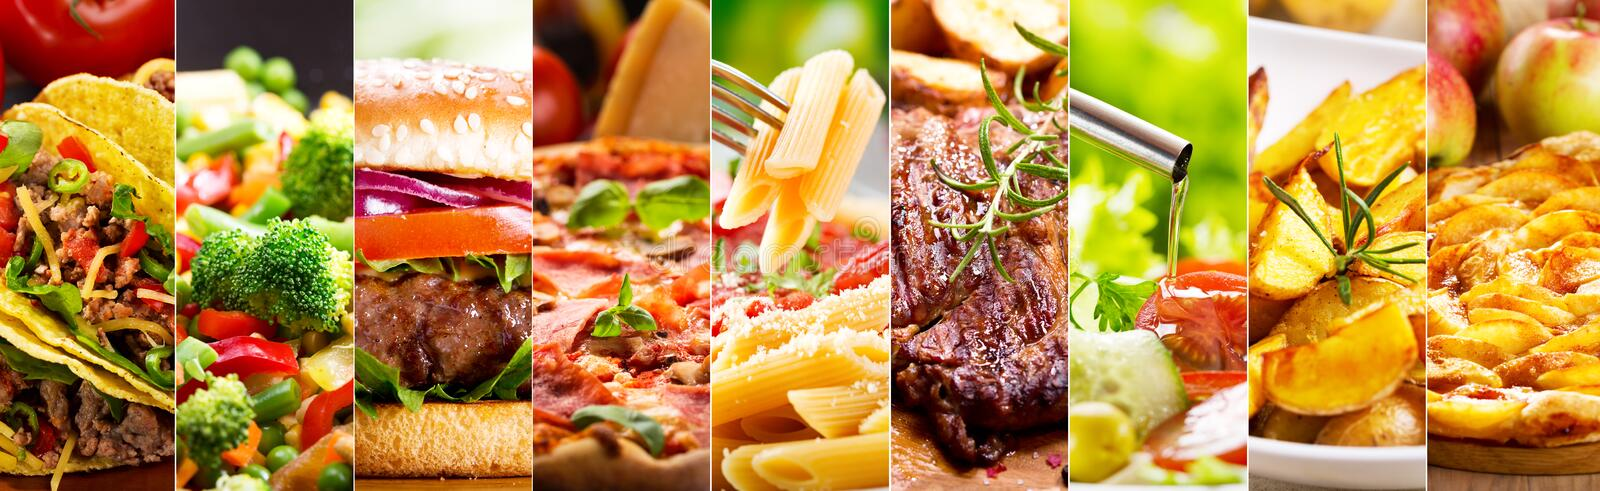 Collage of food products. Collage of various food products stock photography